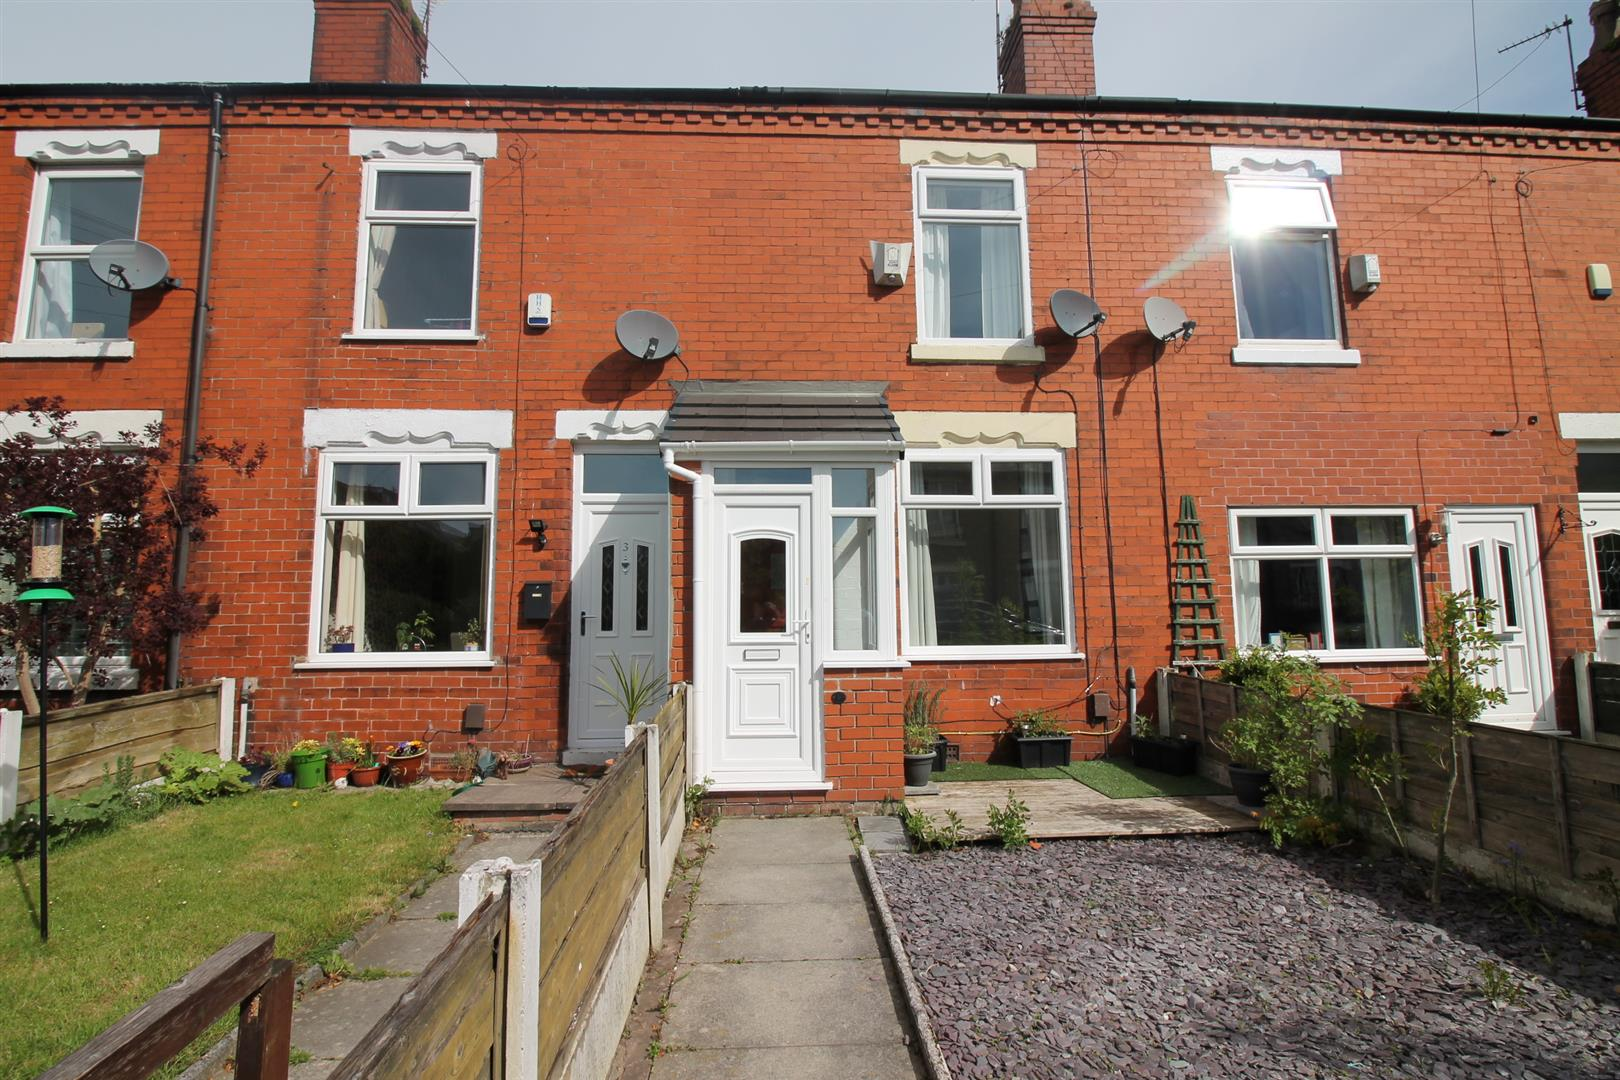 2 Bedroom House - Mid Terrace To Let